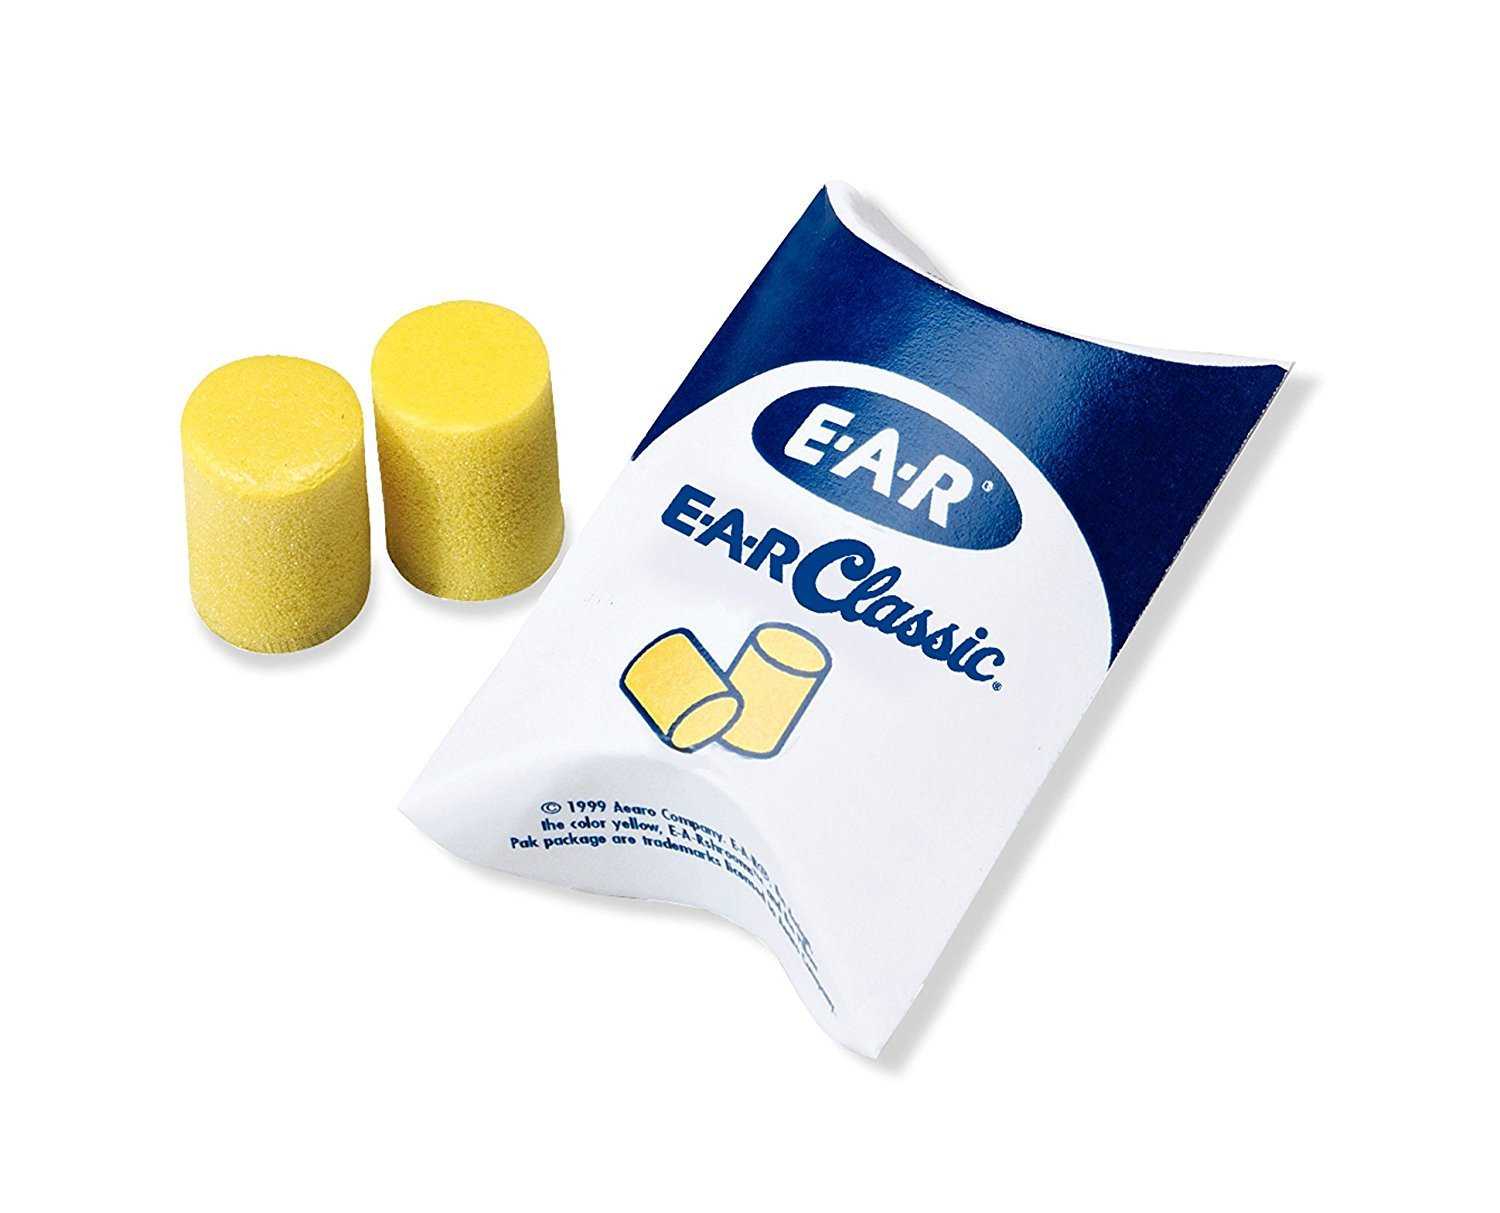 3M E-A-R Classic qAgMw Earplugs 310-1060, Uncorded in Pillow Pack, 30 Count (3 Pack)